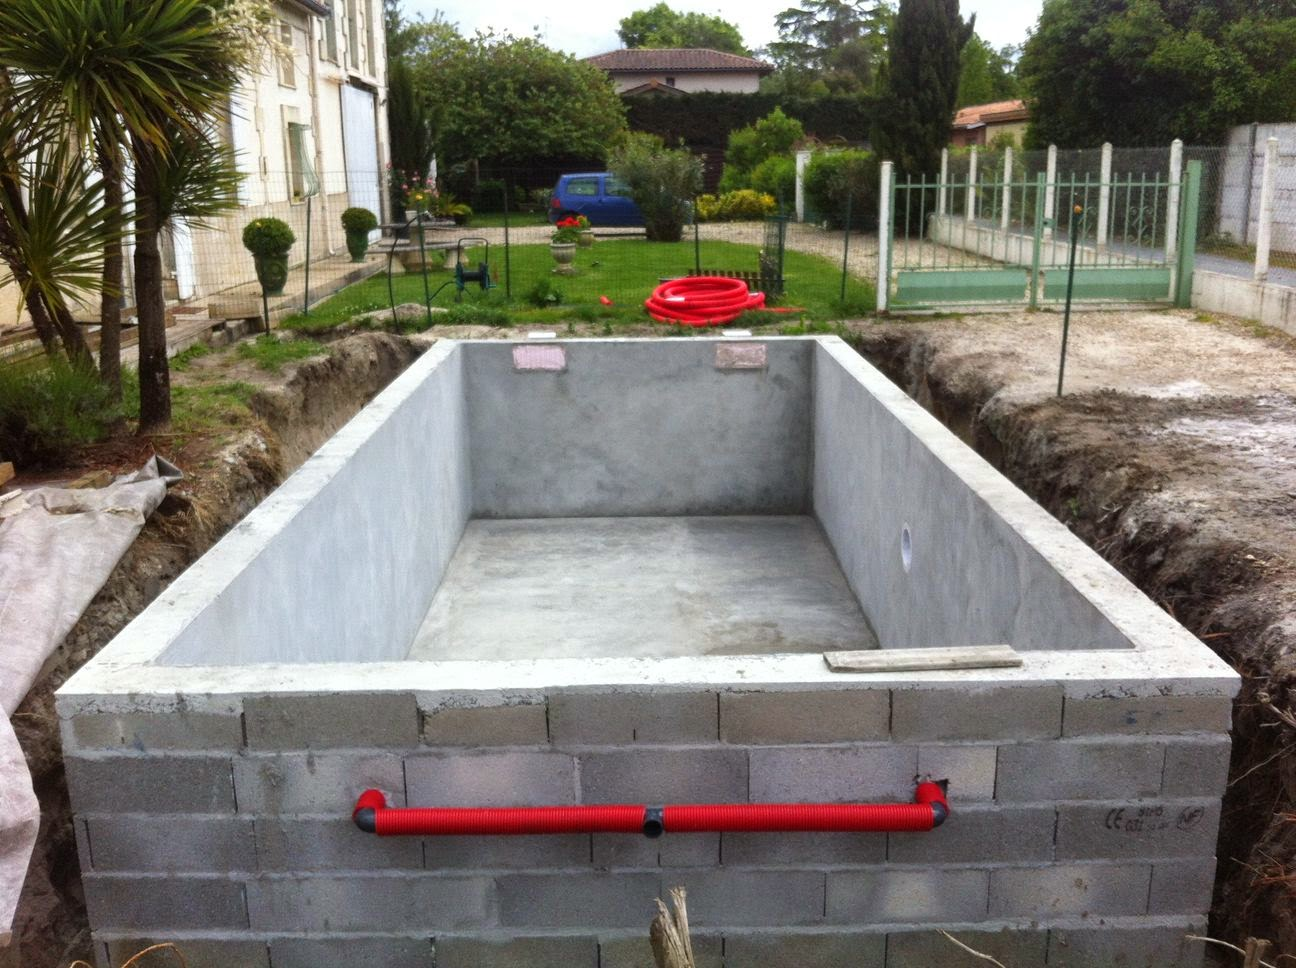 Projet tapes de construction d 39 une piscine en for Construction piscine 33